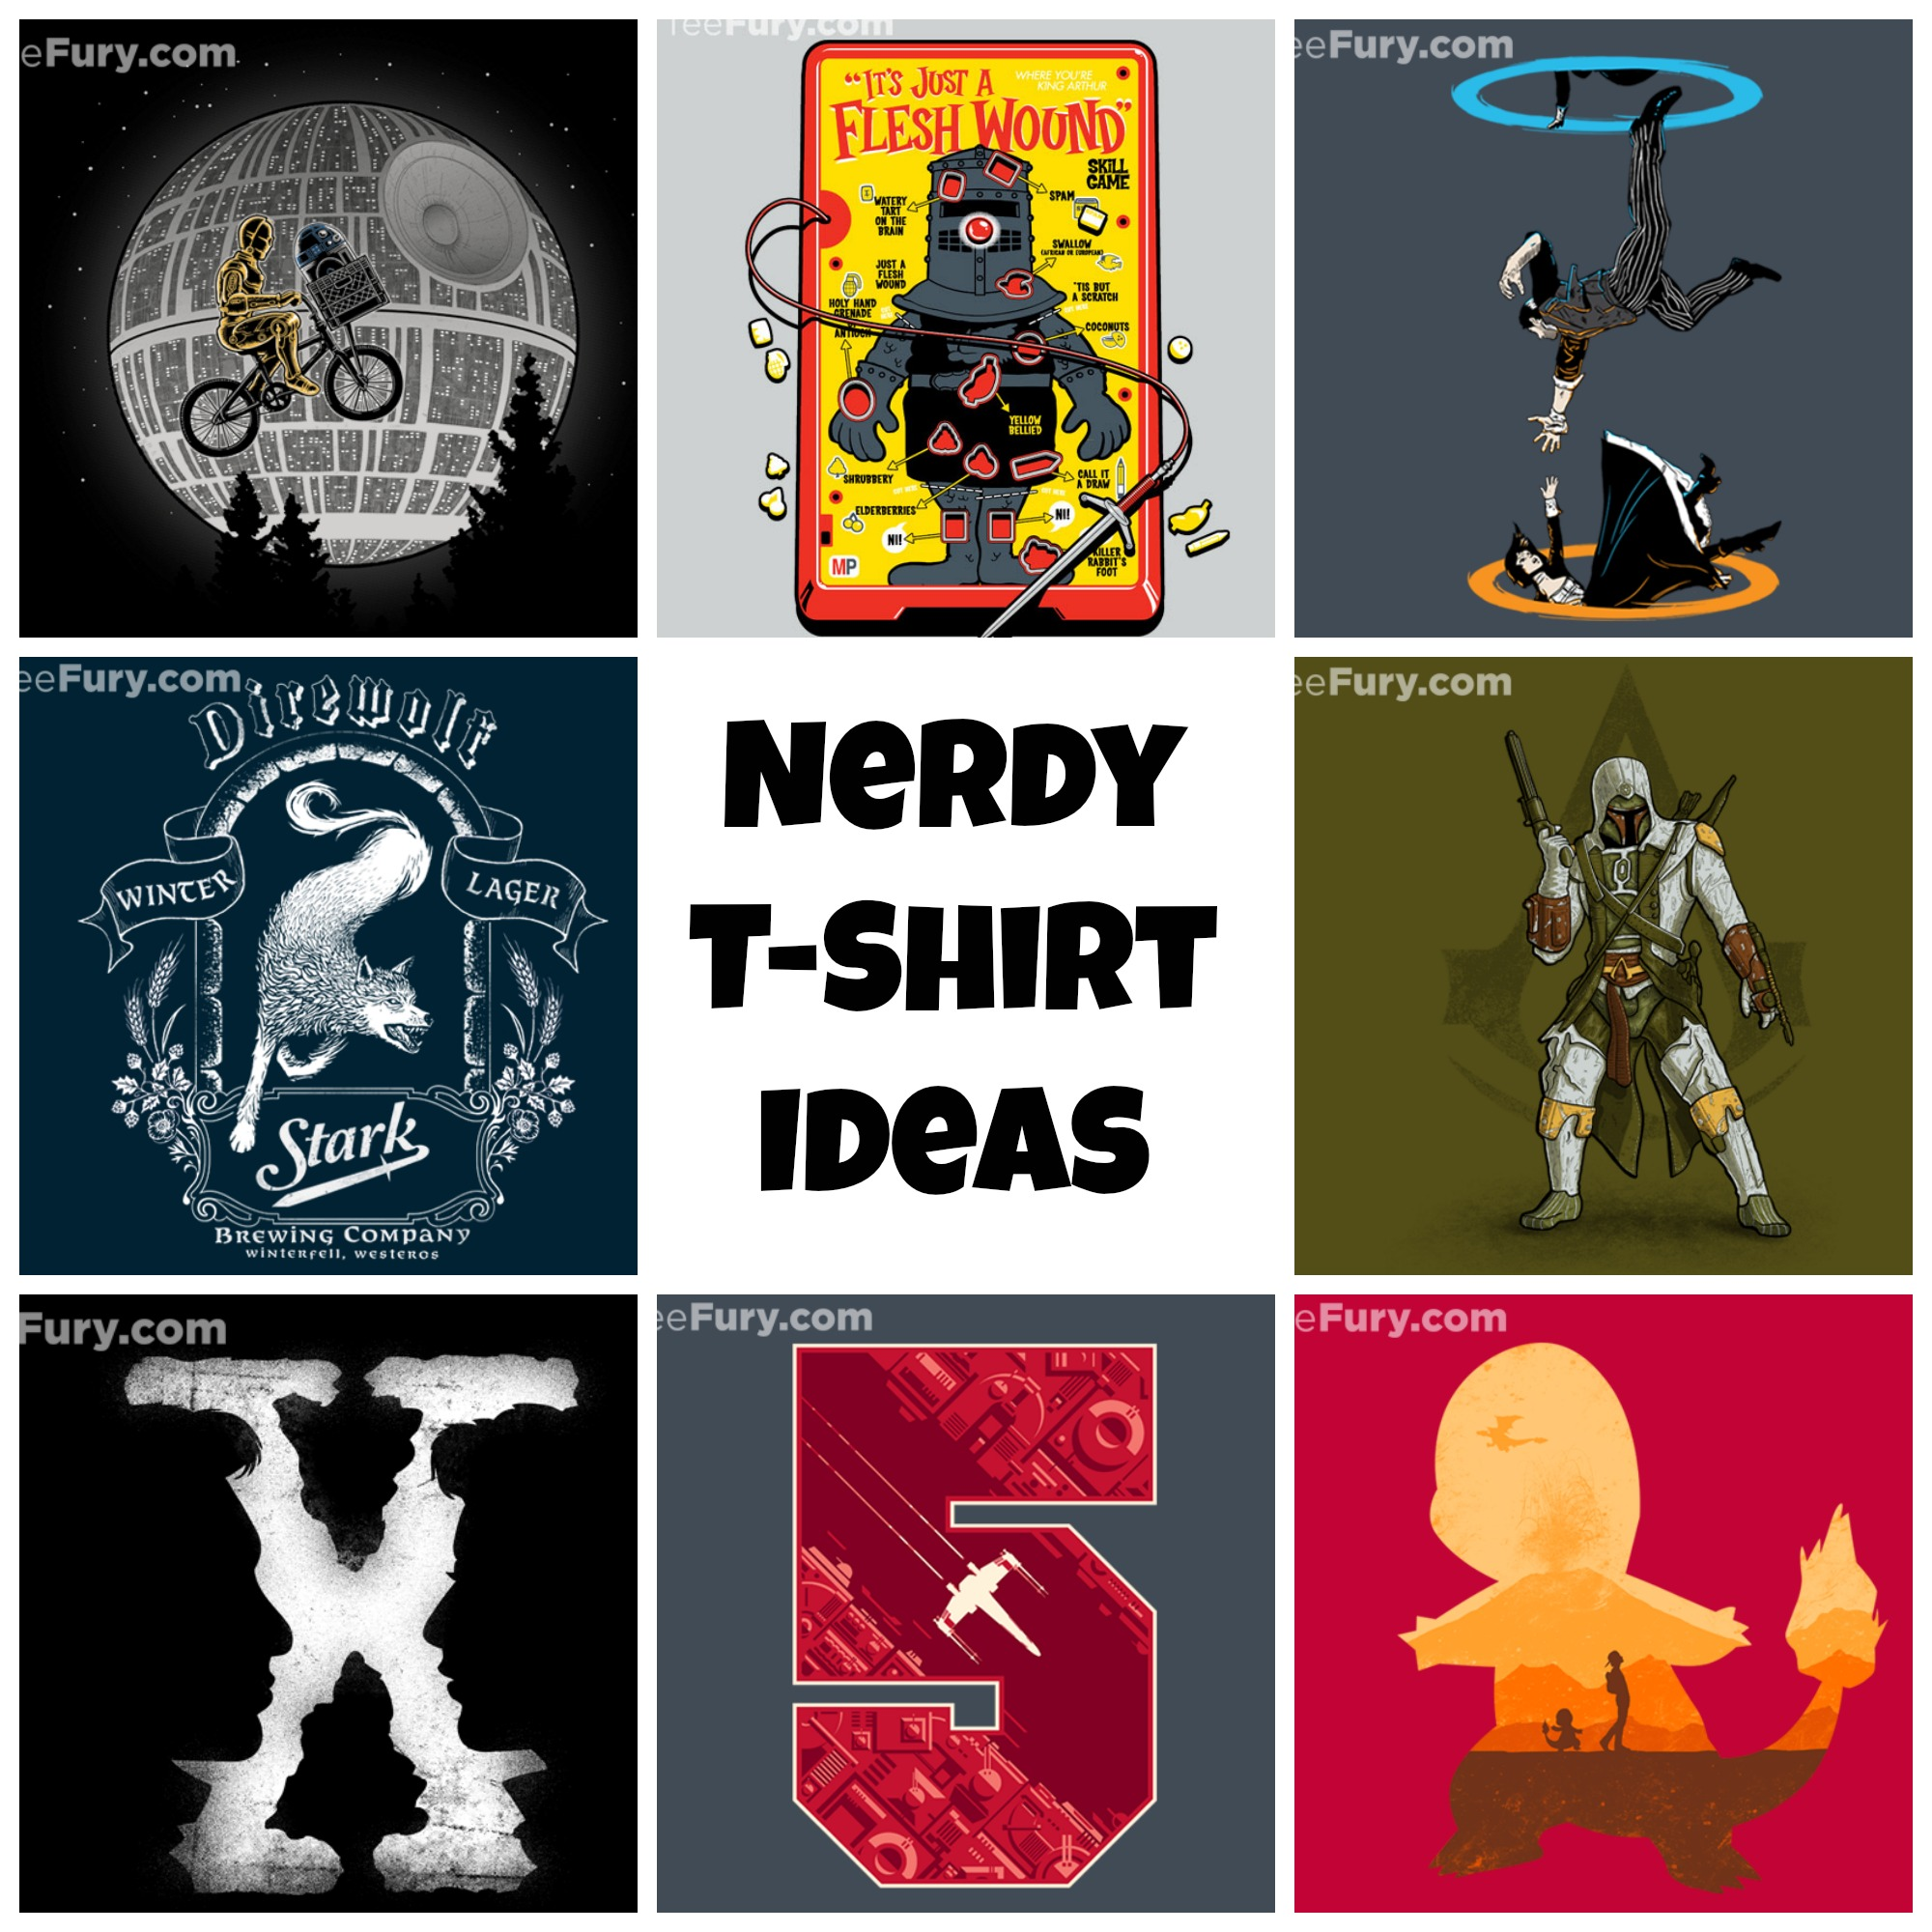 Wedding Gifts For Nerds : Nerdy T-shirt - Gift Ideas for the Nerd in your Life {Round 2} - The ...